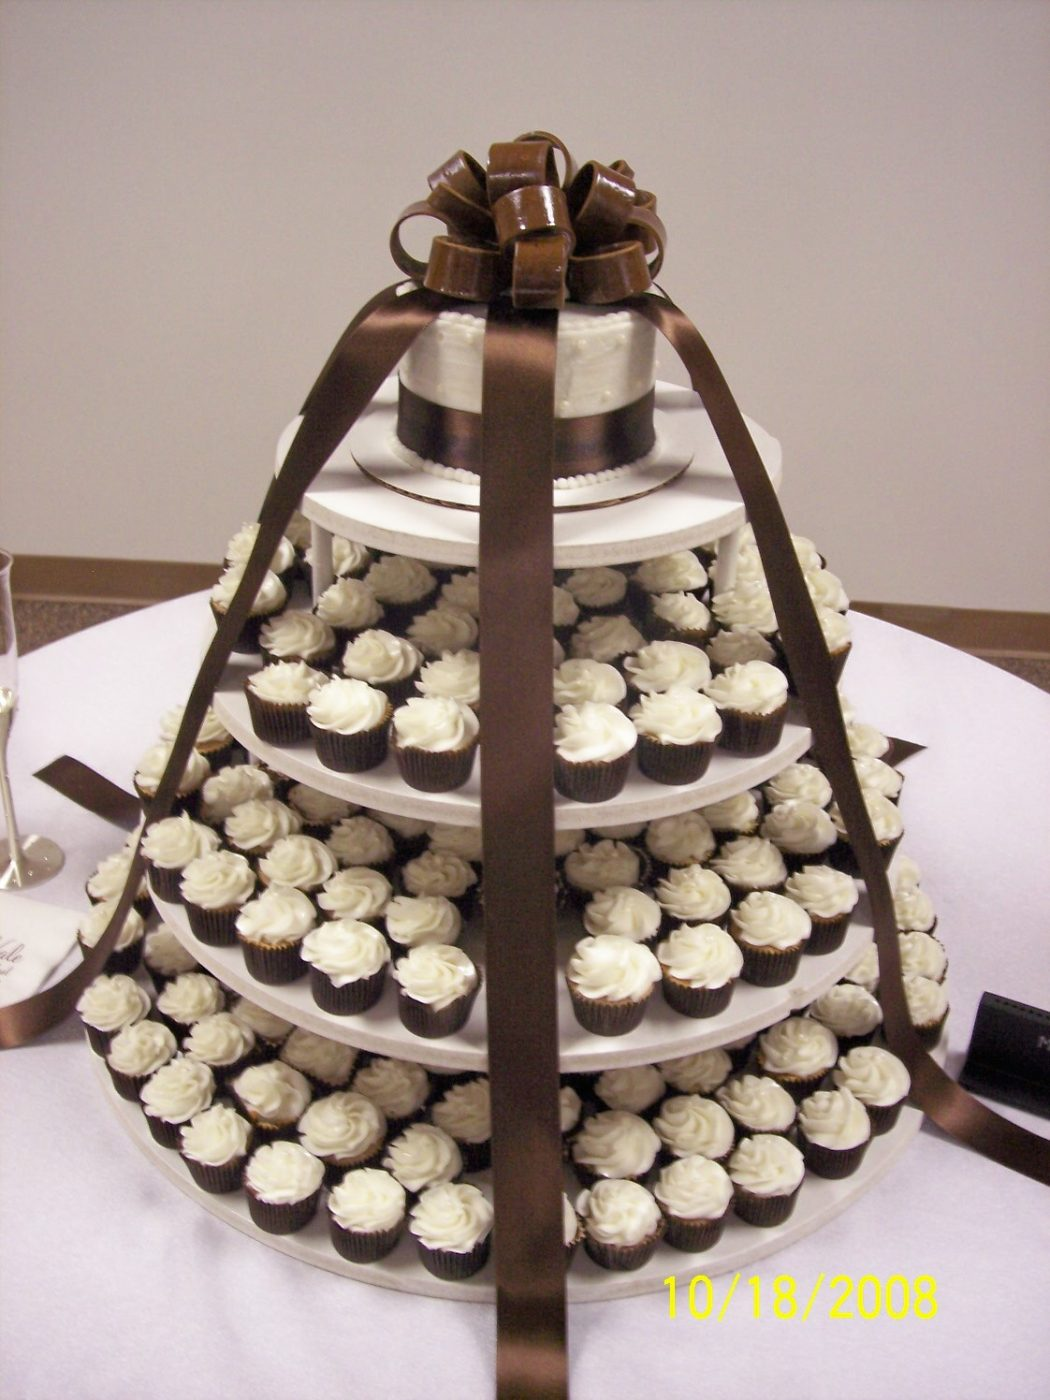 10-18-08_hinson-nale_wedding Cupcakes Are So Easy To Be Made At Home